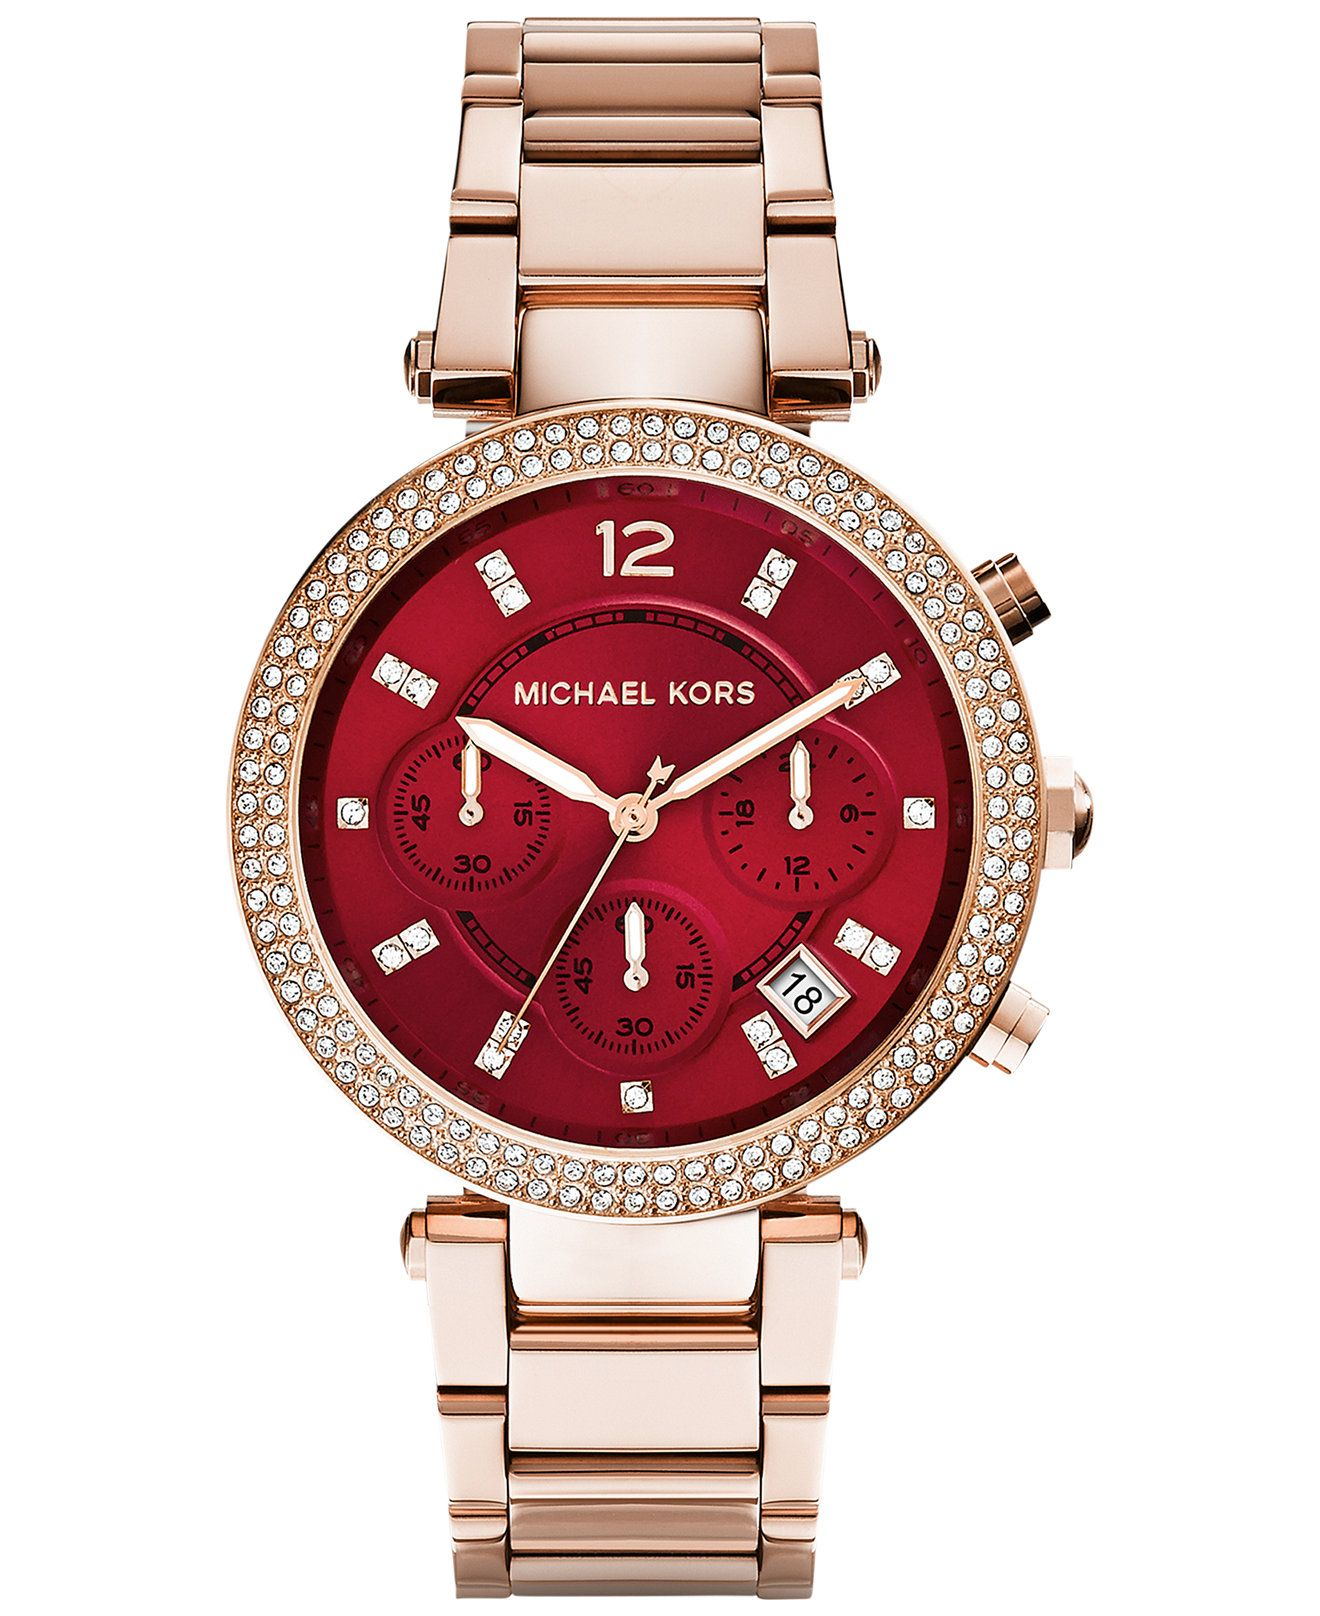 b856181b780e Michael Kors Women s Chronograph Parker Rose Gold-Tone Stainless Steel  Bracelet Watch 39mm MK6106 - For Her - Jewelry   Watches - Macy s